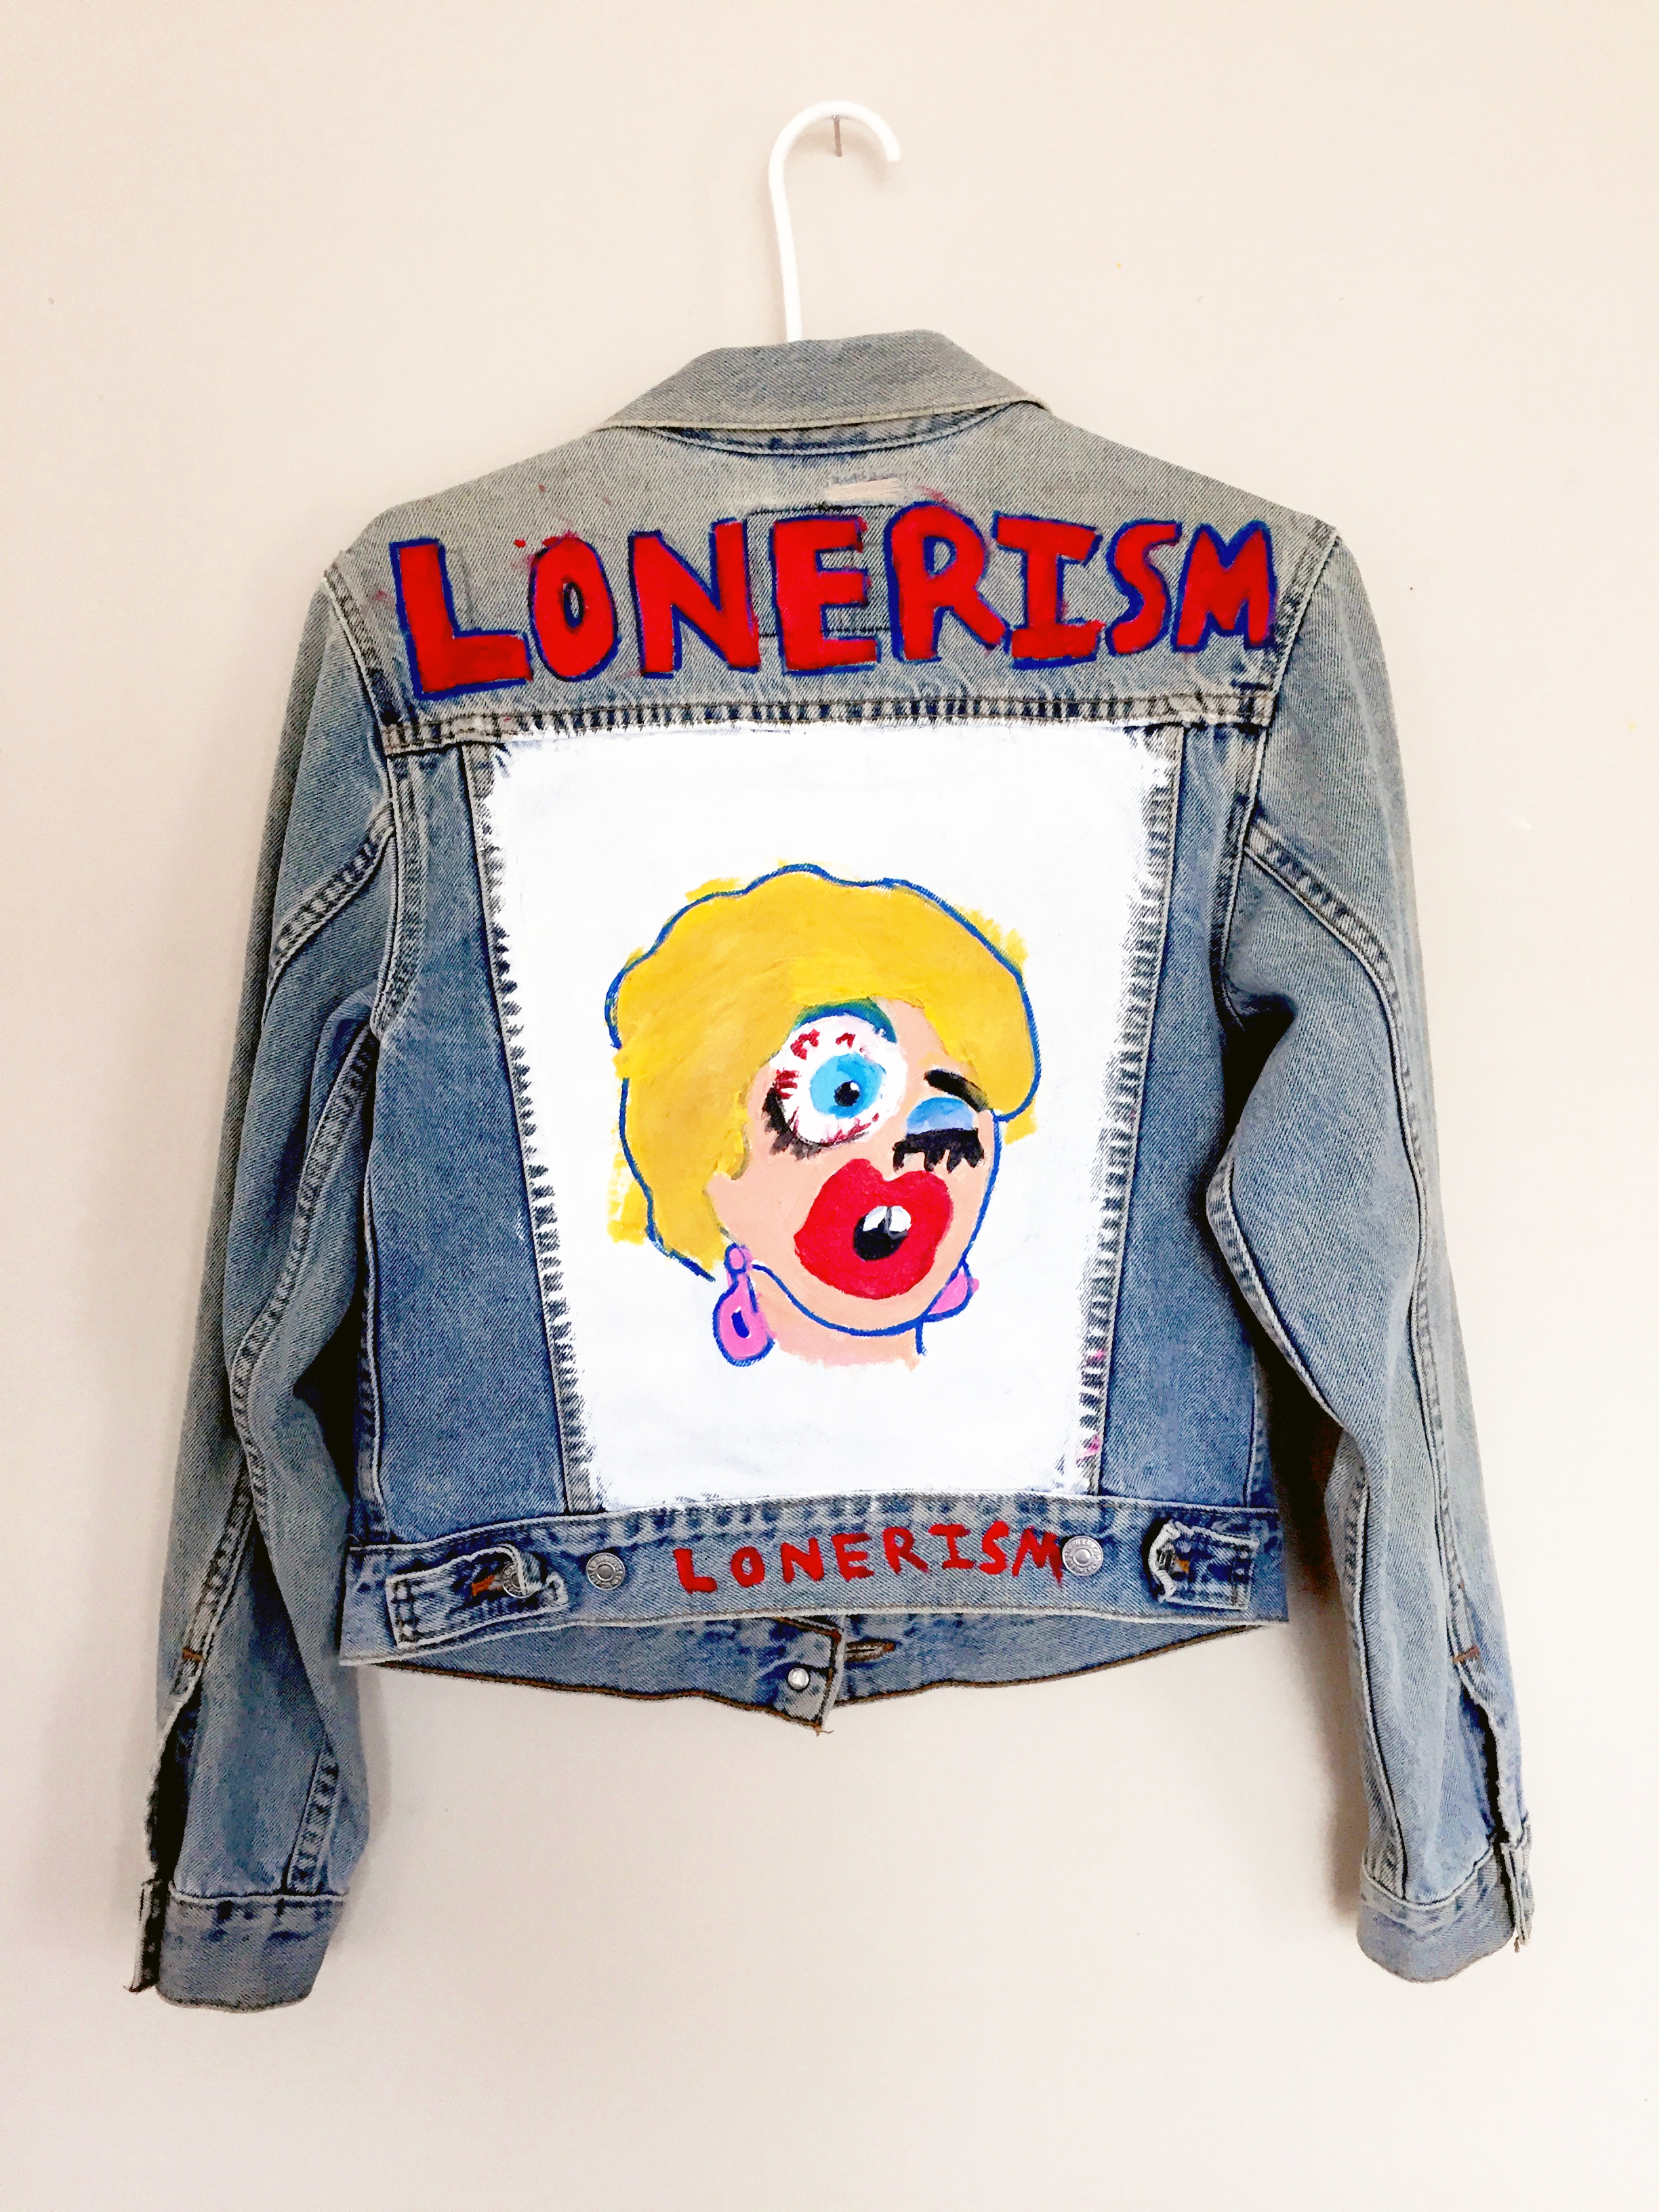 Lonerism Co Jacket by Artist Rachel O'Donnell